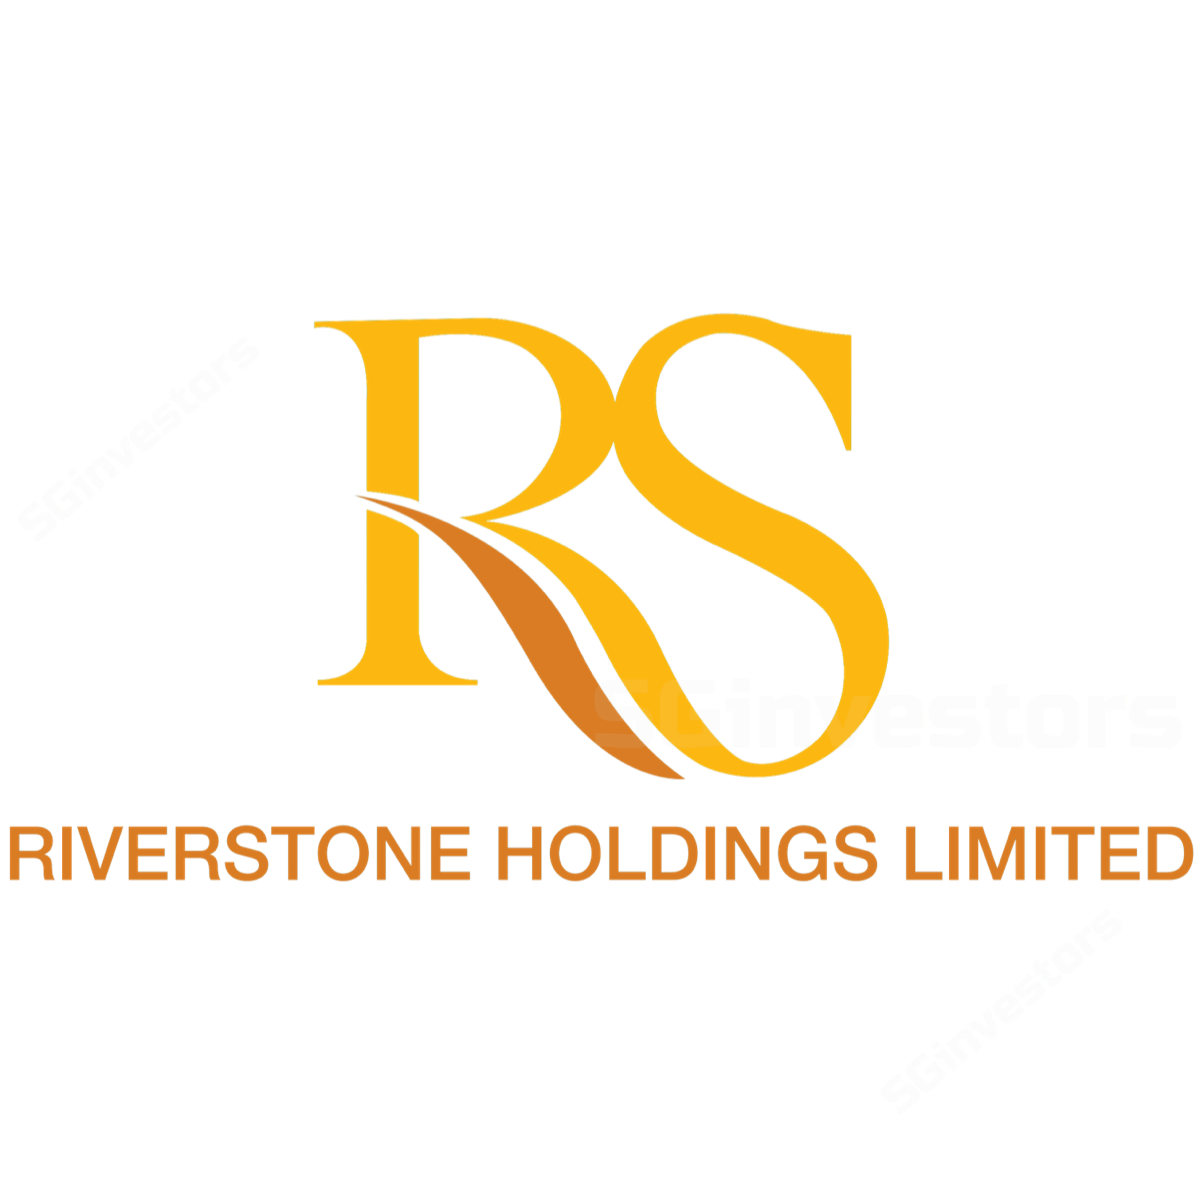 Riverstone Holdings - DBS Vickers 2018-02-26: Lifted By The Semiconductor Upcycle